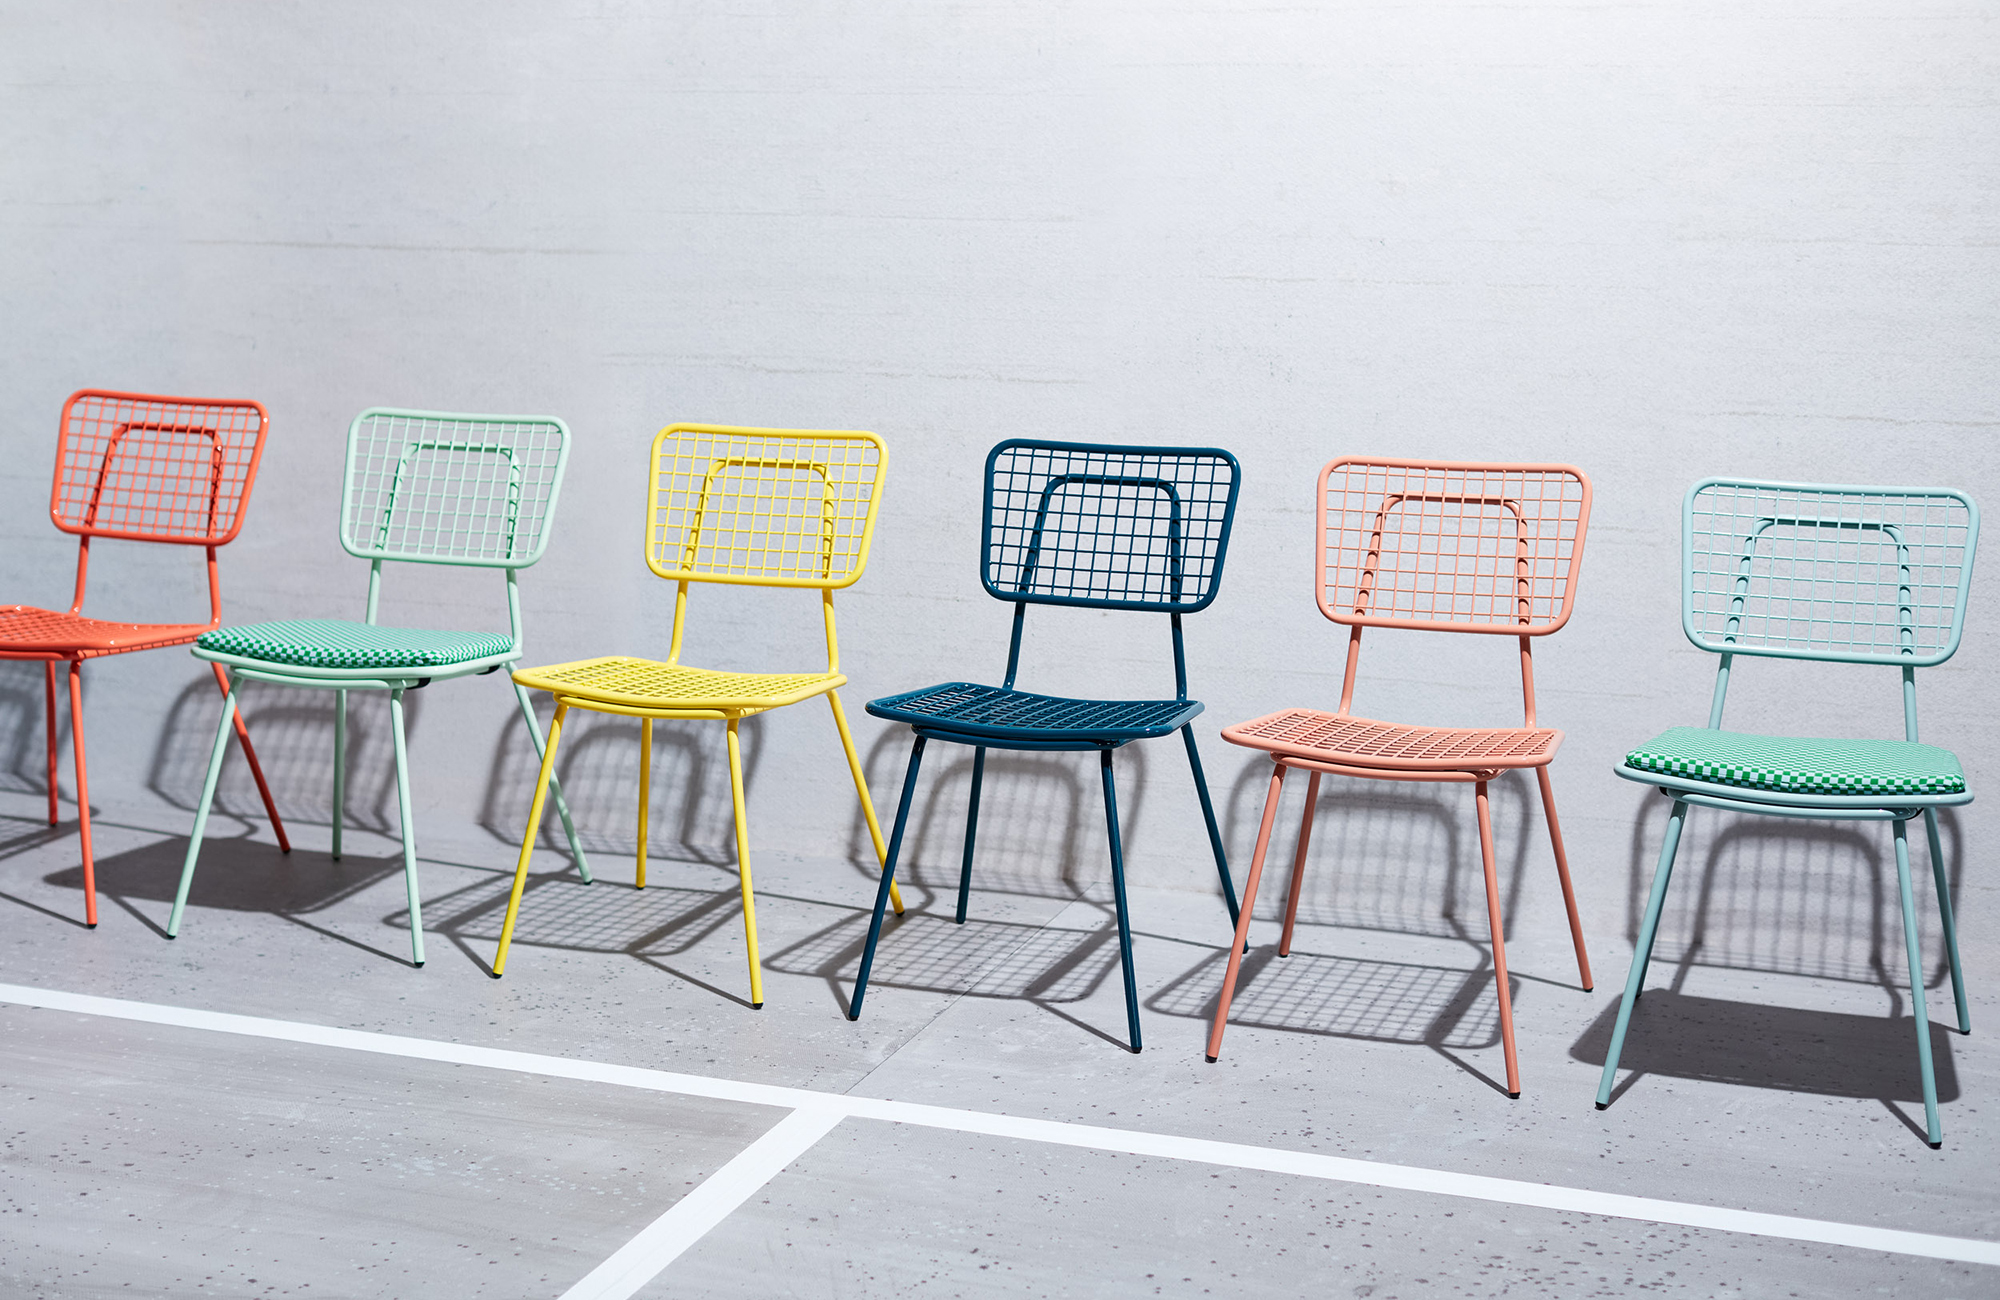 A row of metal wire chairs in different colors